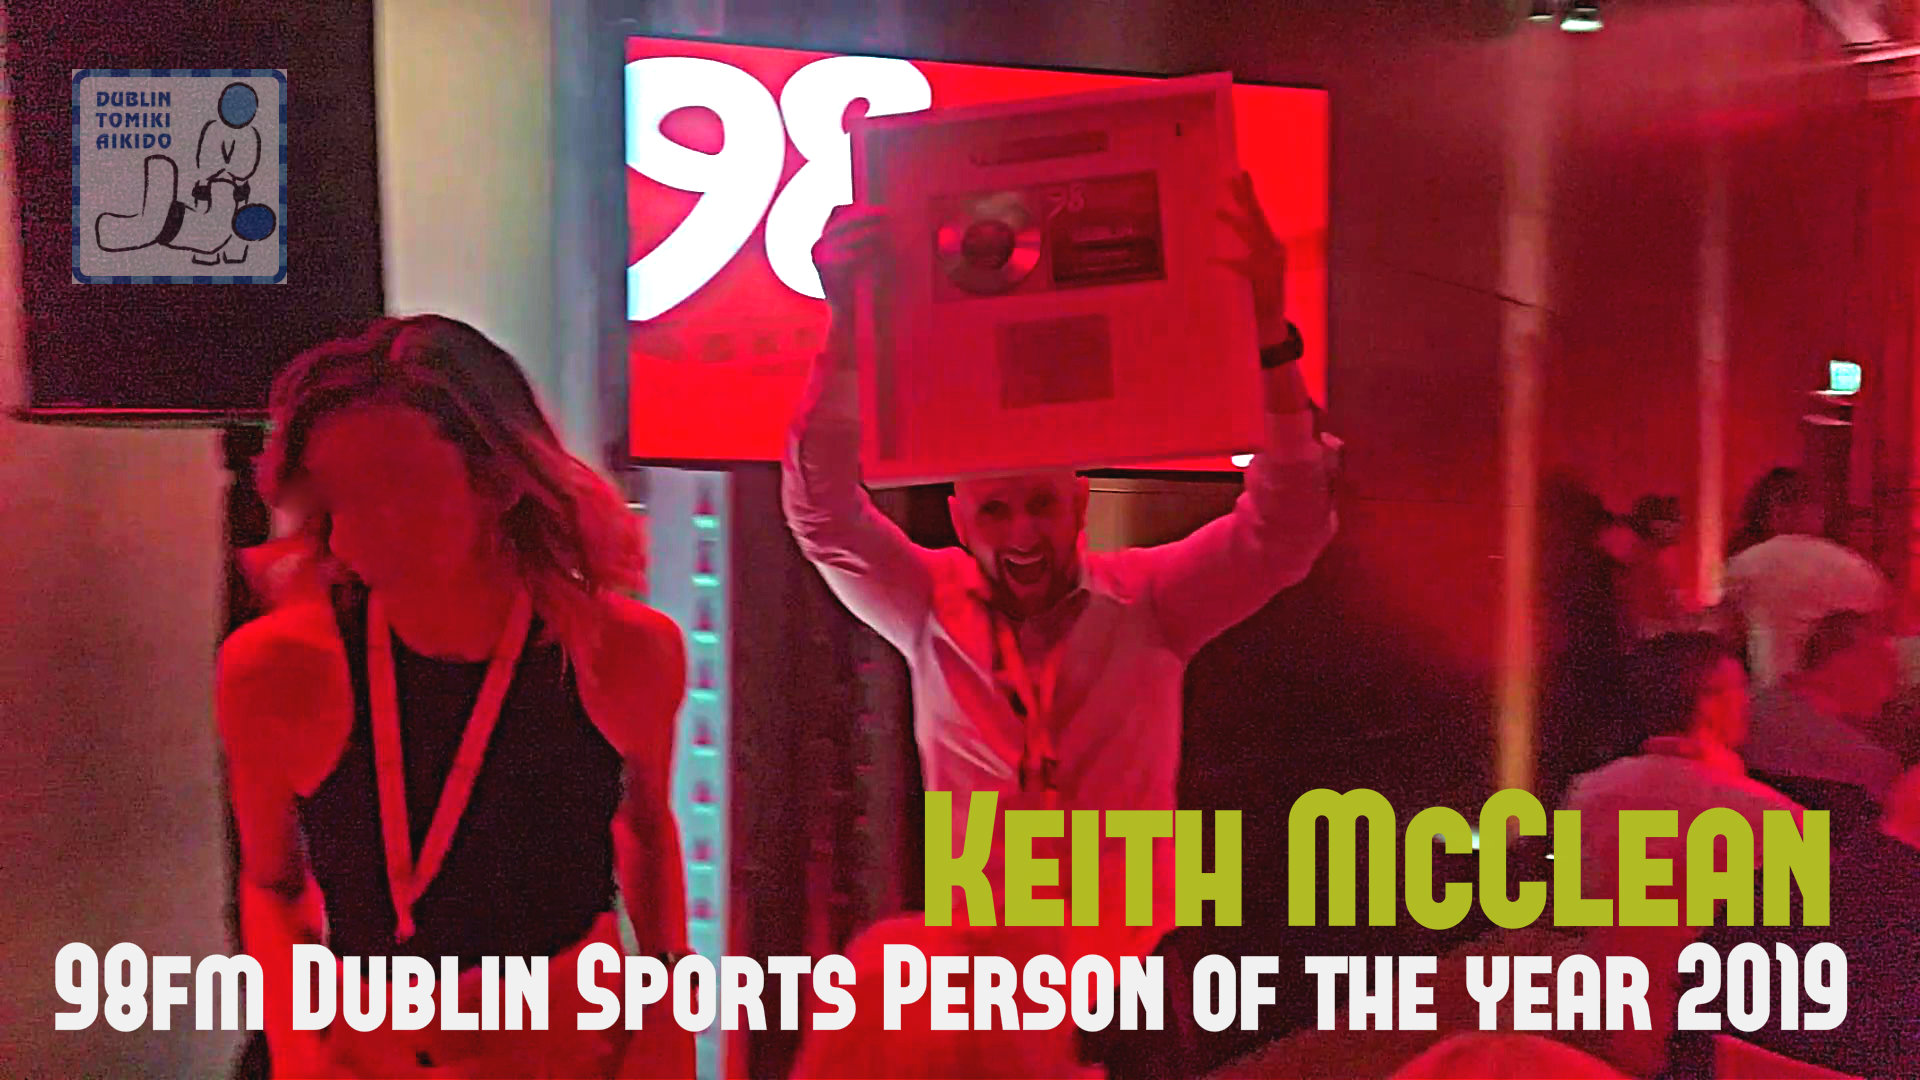 98fm best of dublin sports person keith mcclean